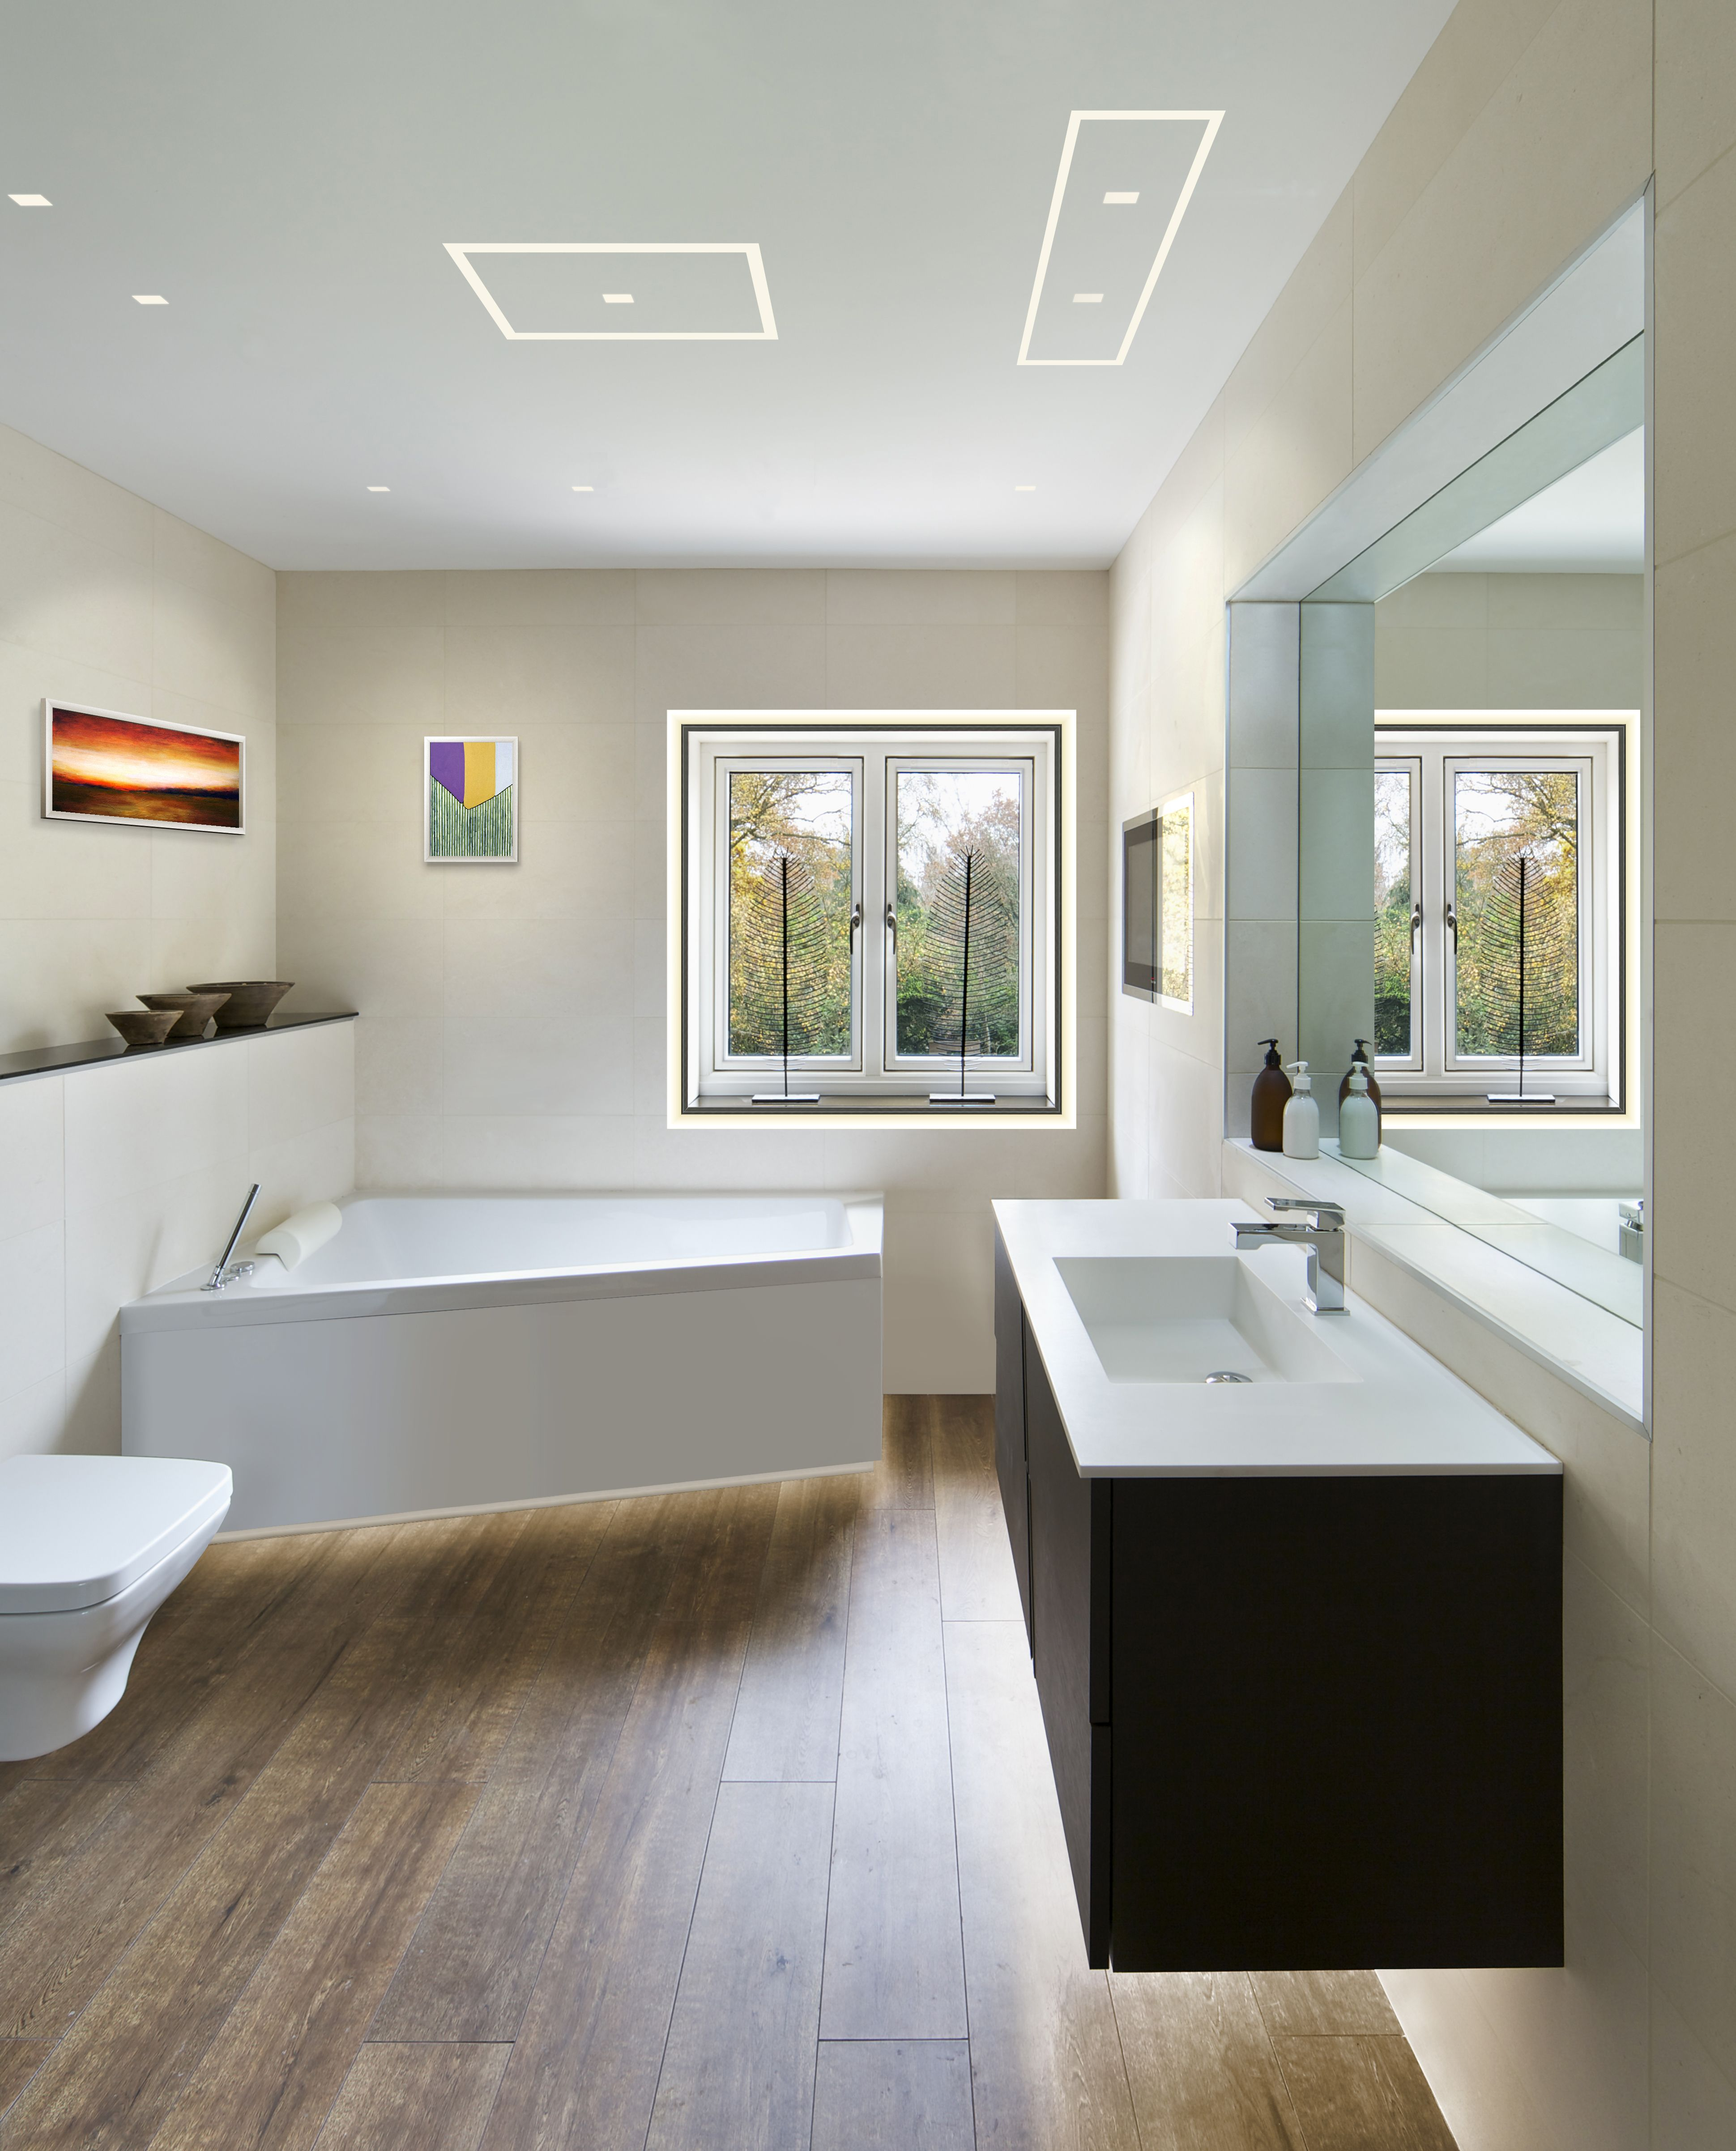 Contemporary Led Accent Light For Any Space Modern Led Lighting For The Bathroom Aurora